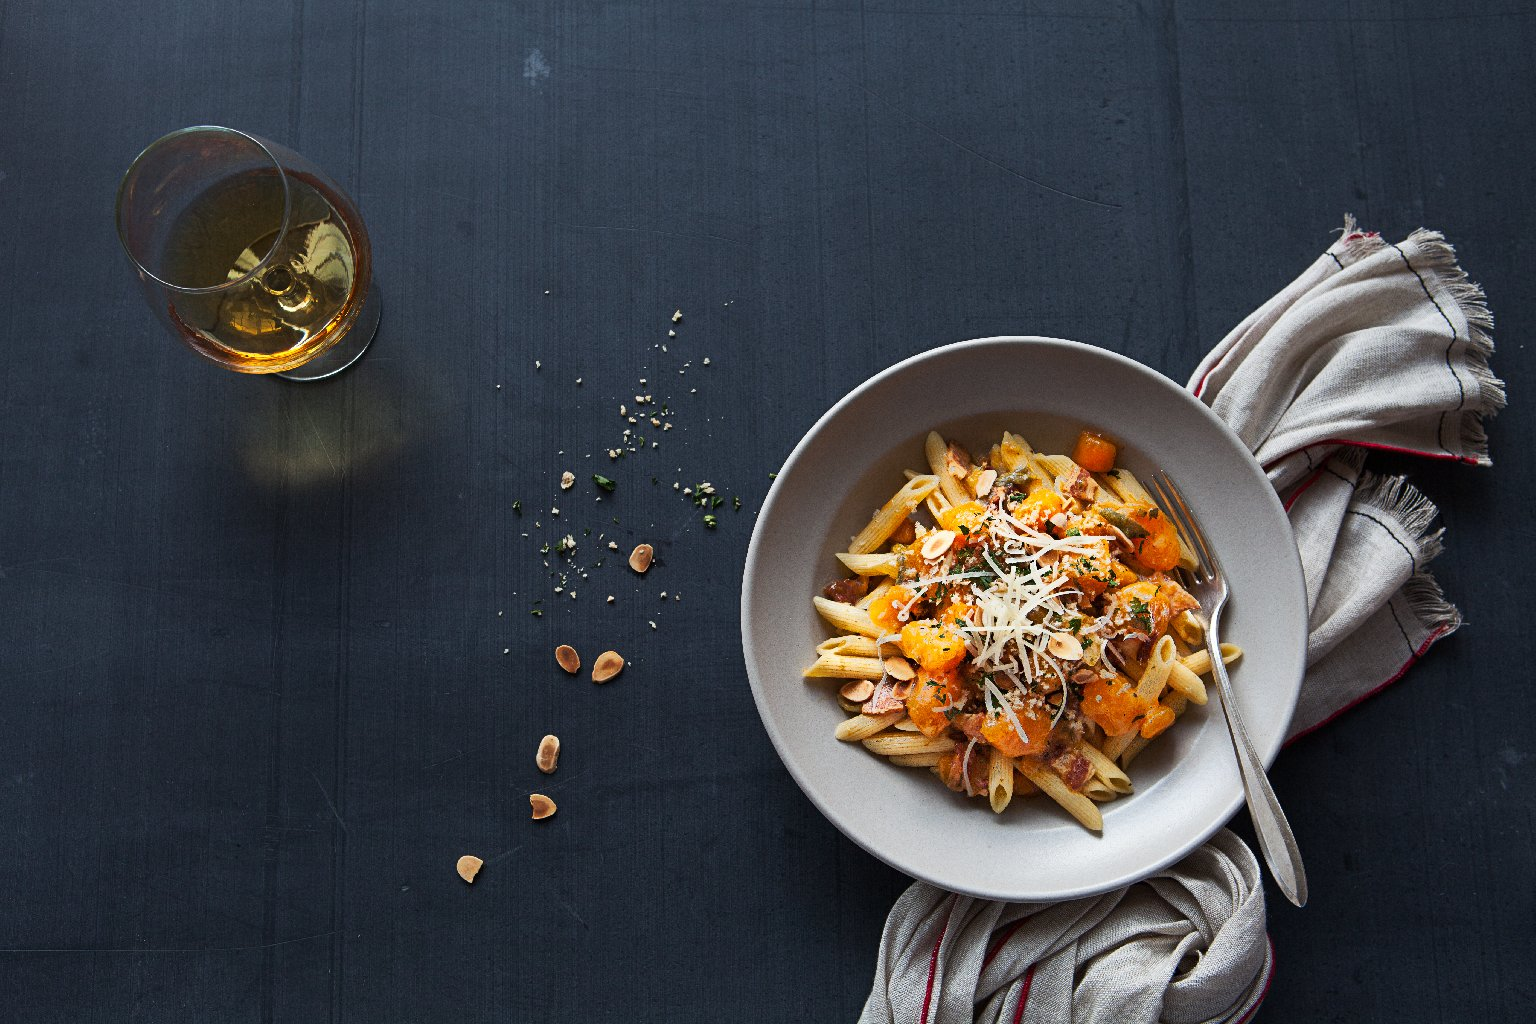 A meal prepared from Munchery. Photo: Munchery